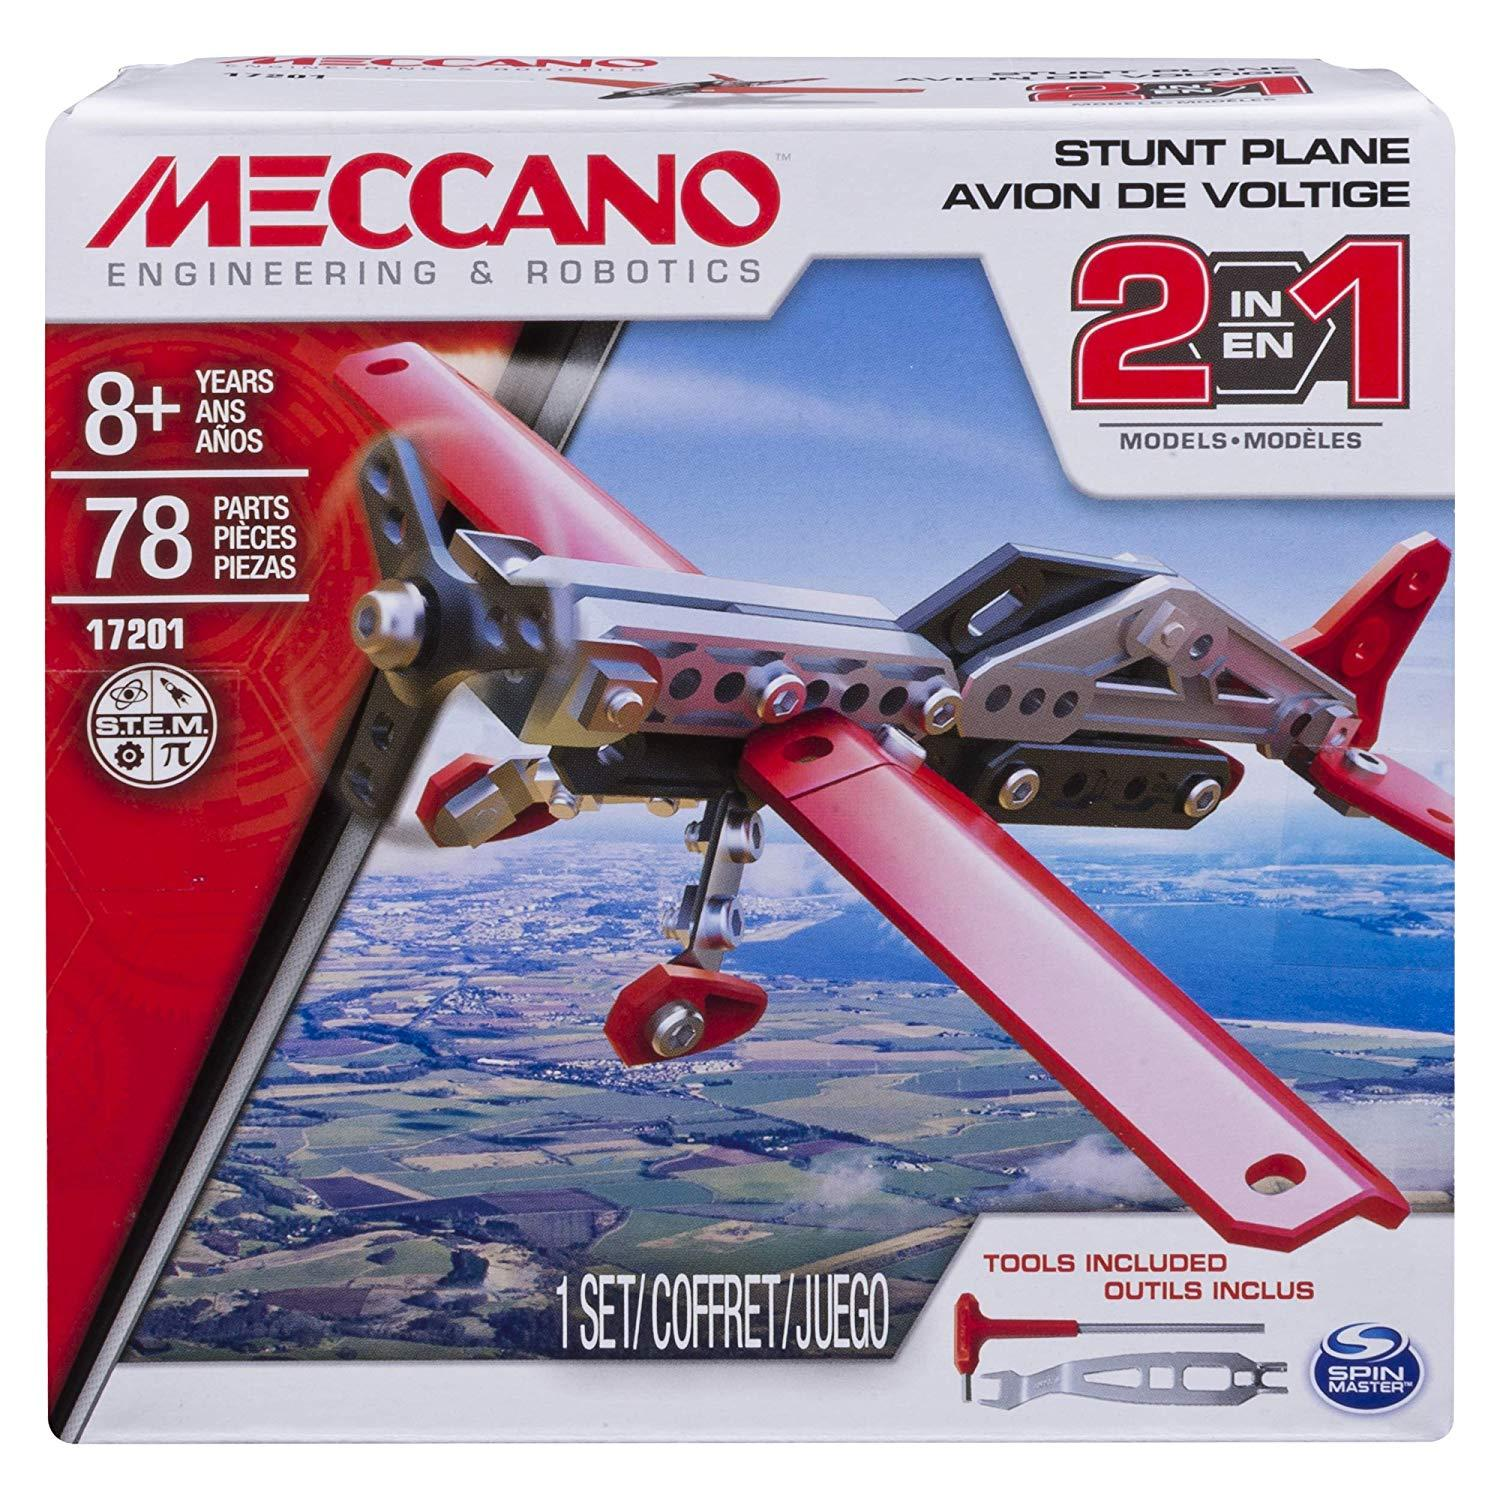 Meccano 2-In-1 Model - Stunt Plane By Bunnybox.